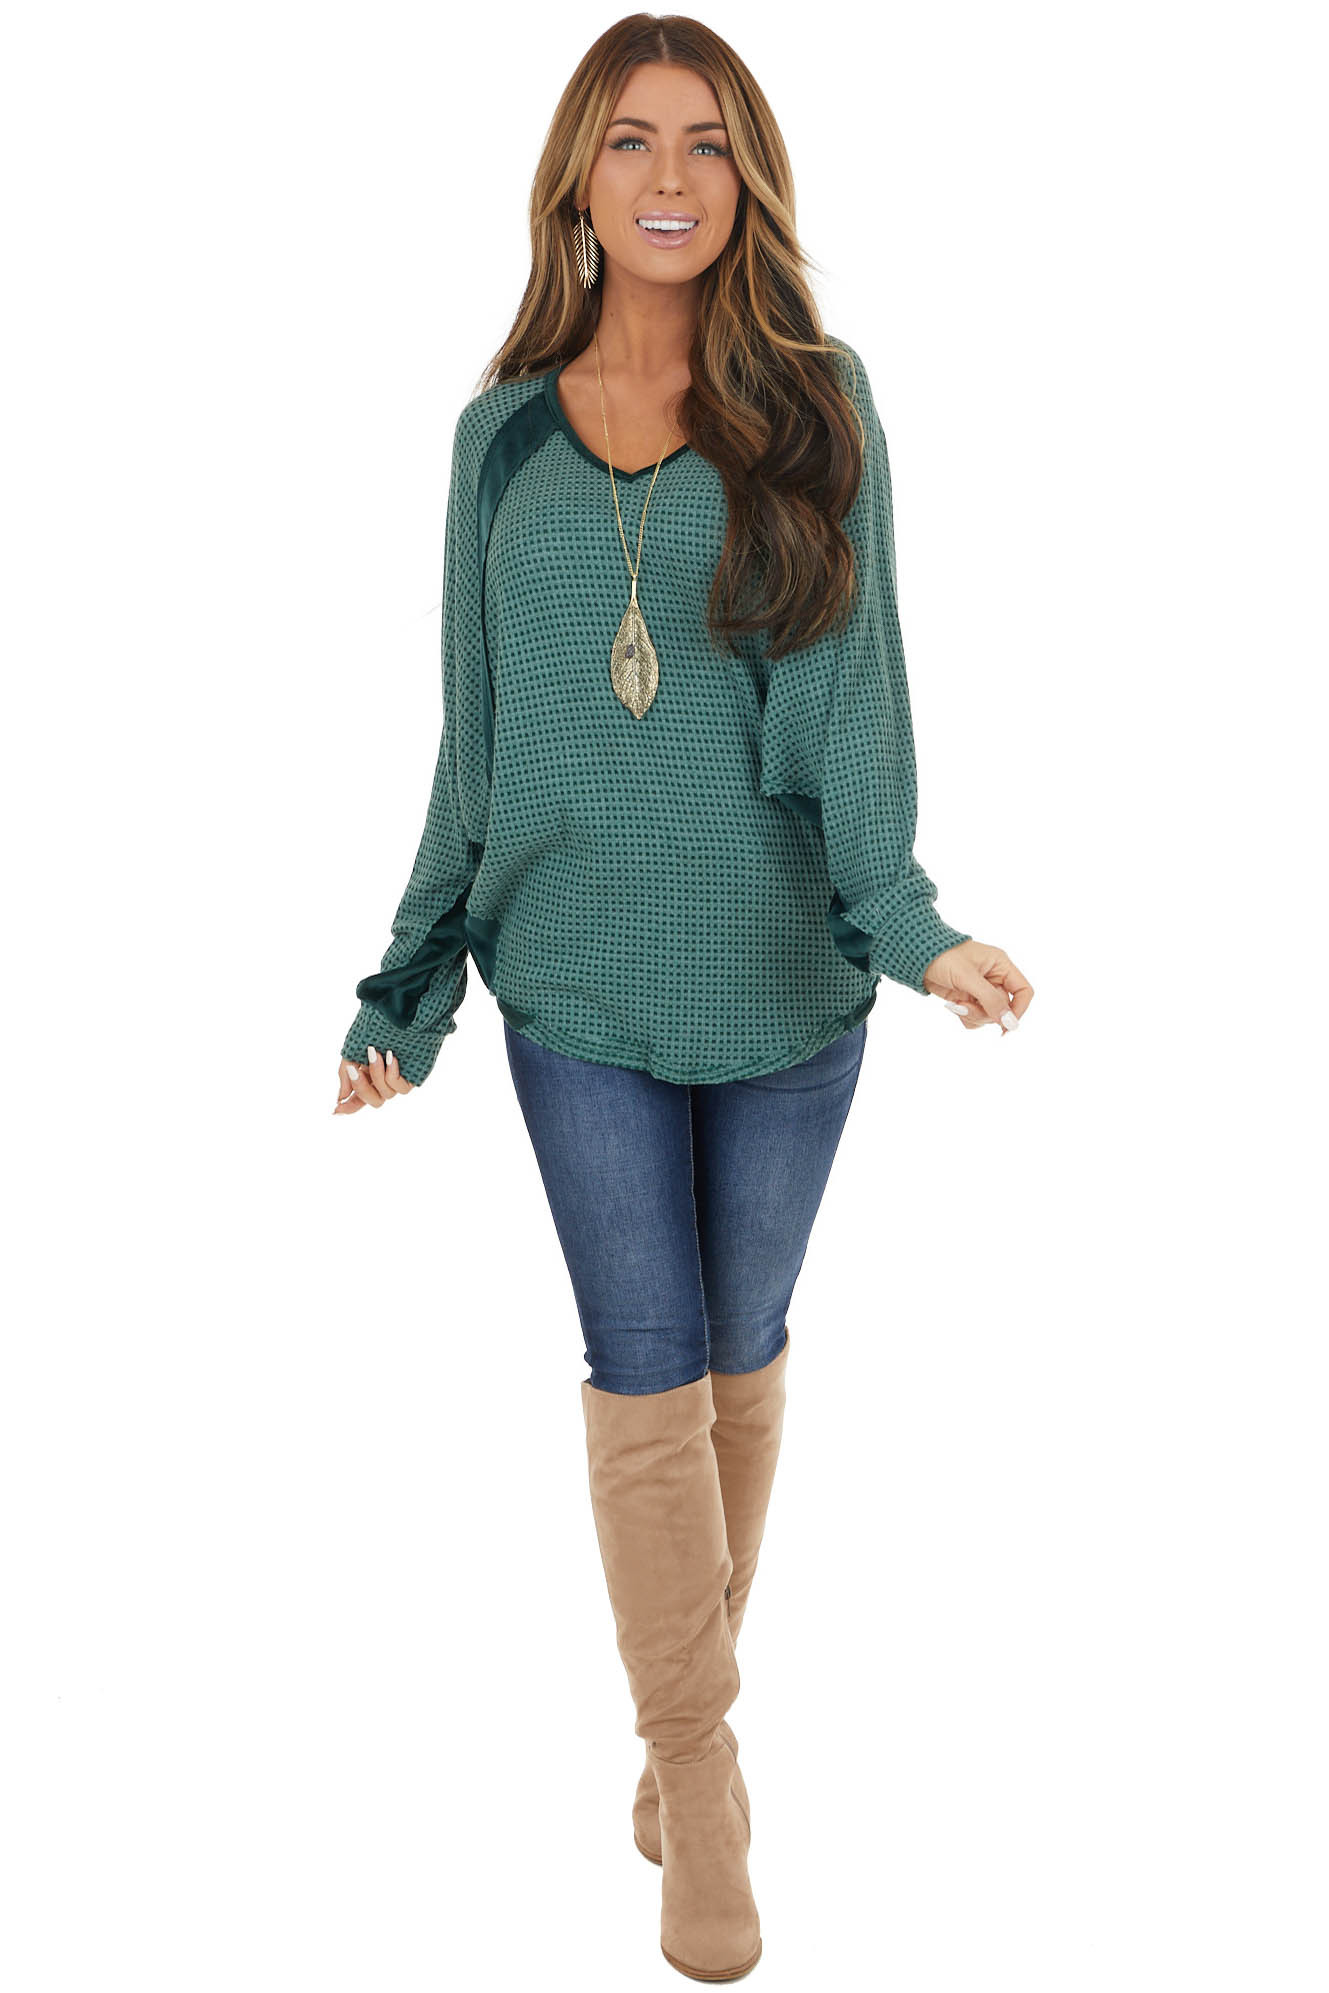 Hunter Green Waffle Knit Loose Fit Top with Velvet Details